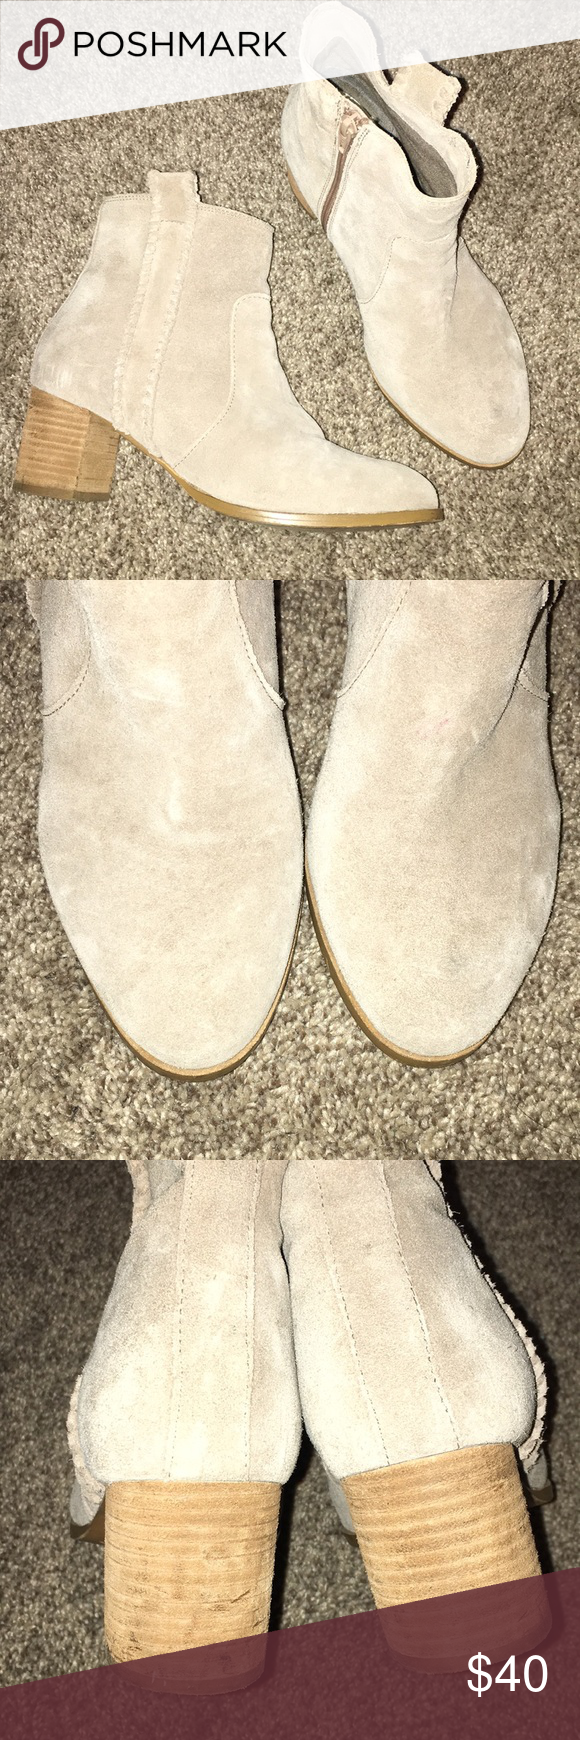 Coconuts by Matisse beige leather booties Coconuts by Matisse beige leather booties, gently used. Bought last year. Comfy chunky heel a little over 2 in. Has a cute almost braided design on the side. Side zipper. Minor scuffing throughout as most suede shoes get these. Matisse Shoes Ankle Boots & Booties